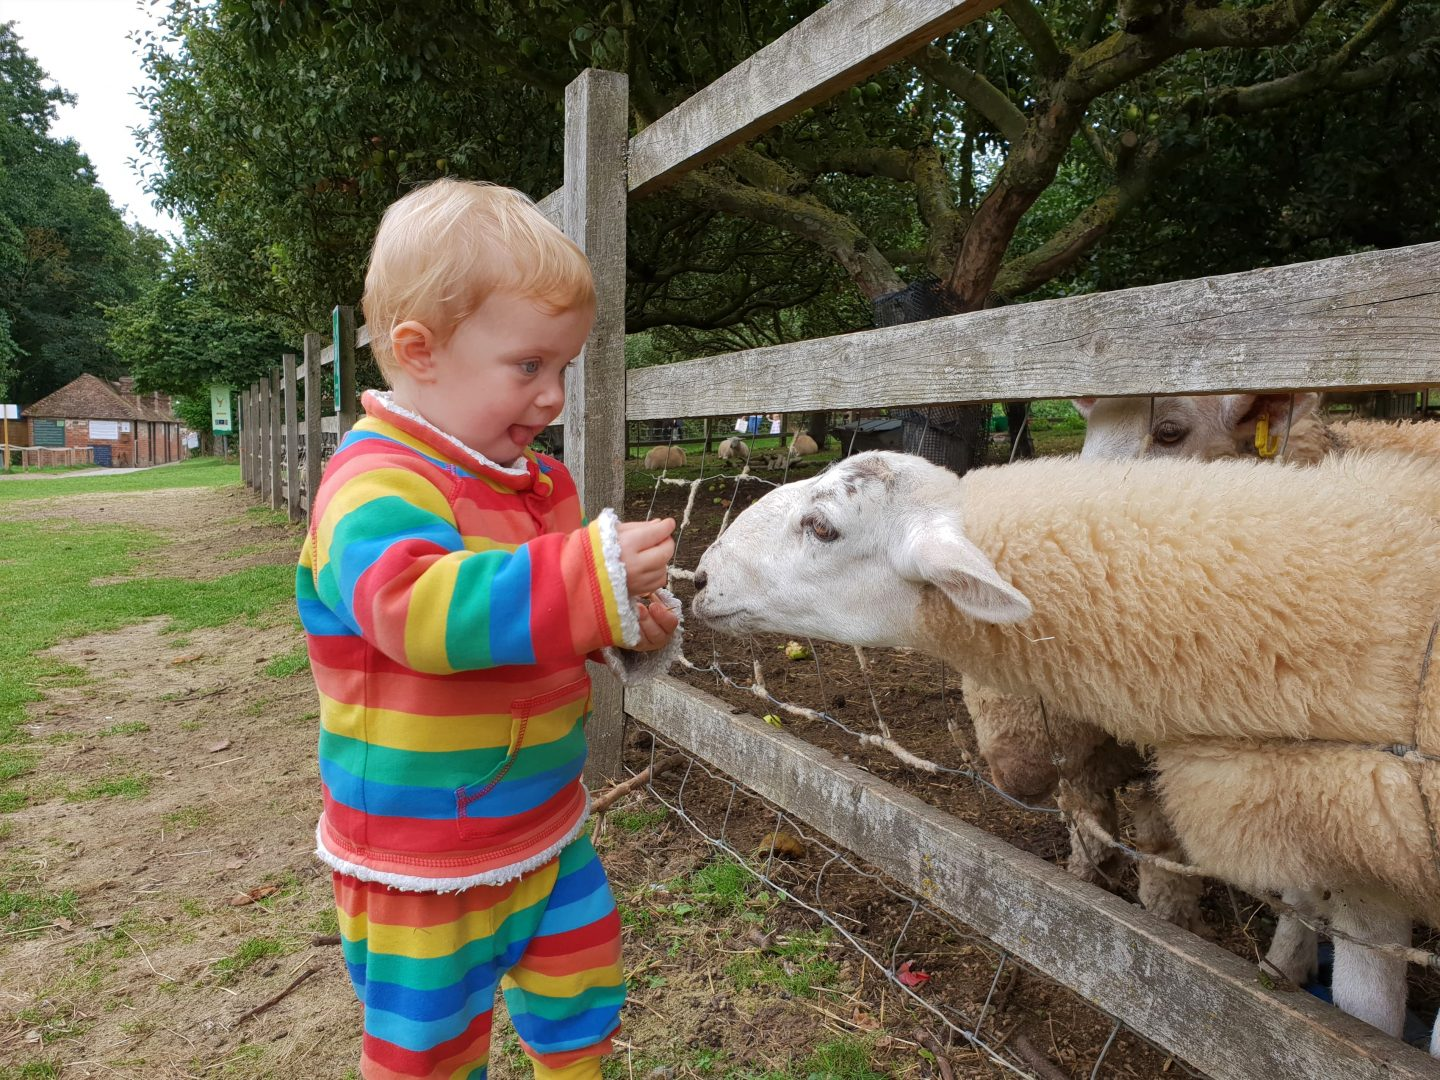 Toddler feeding sheep at Kent Life, Maidstone